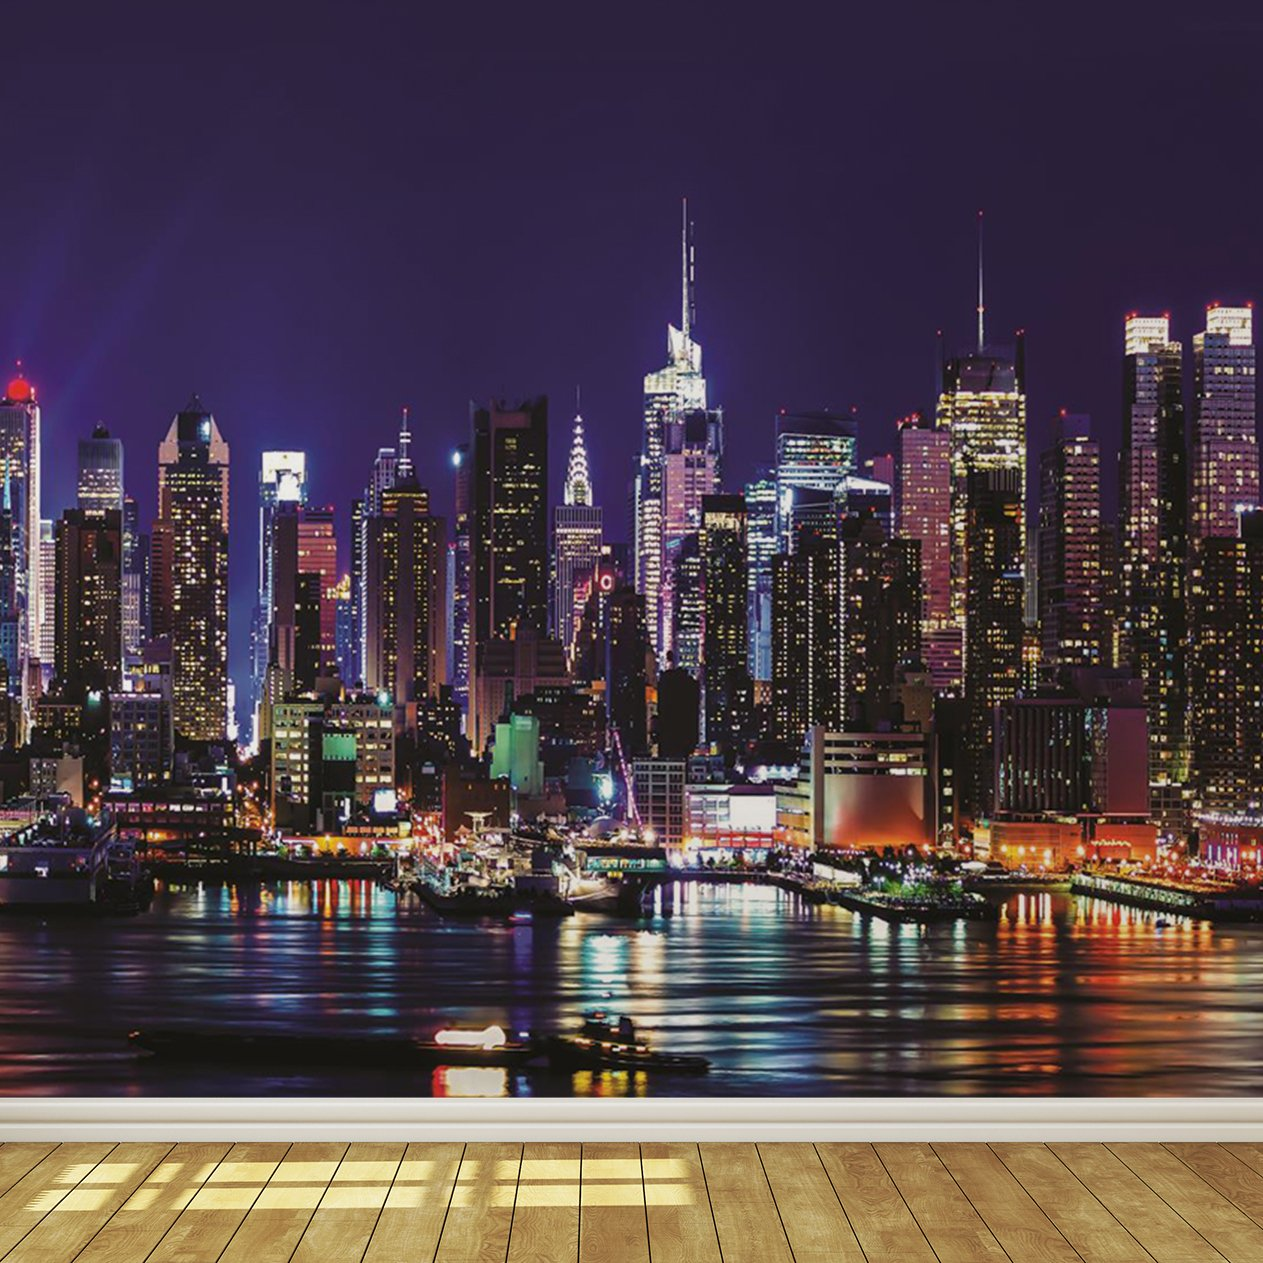 New York City Skyline At Night 7 Wallpaper Mural: Amazon.co.uk: DIY U0026 Tools